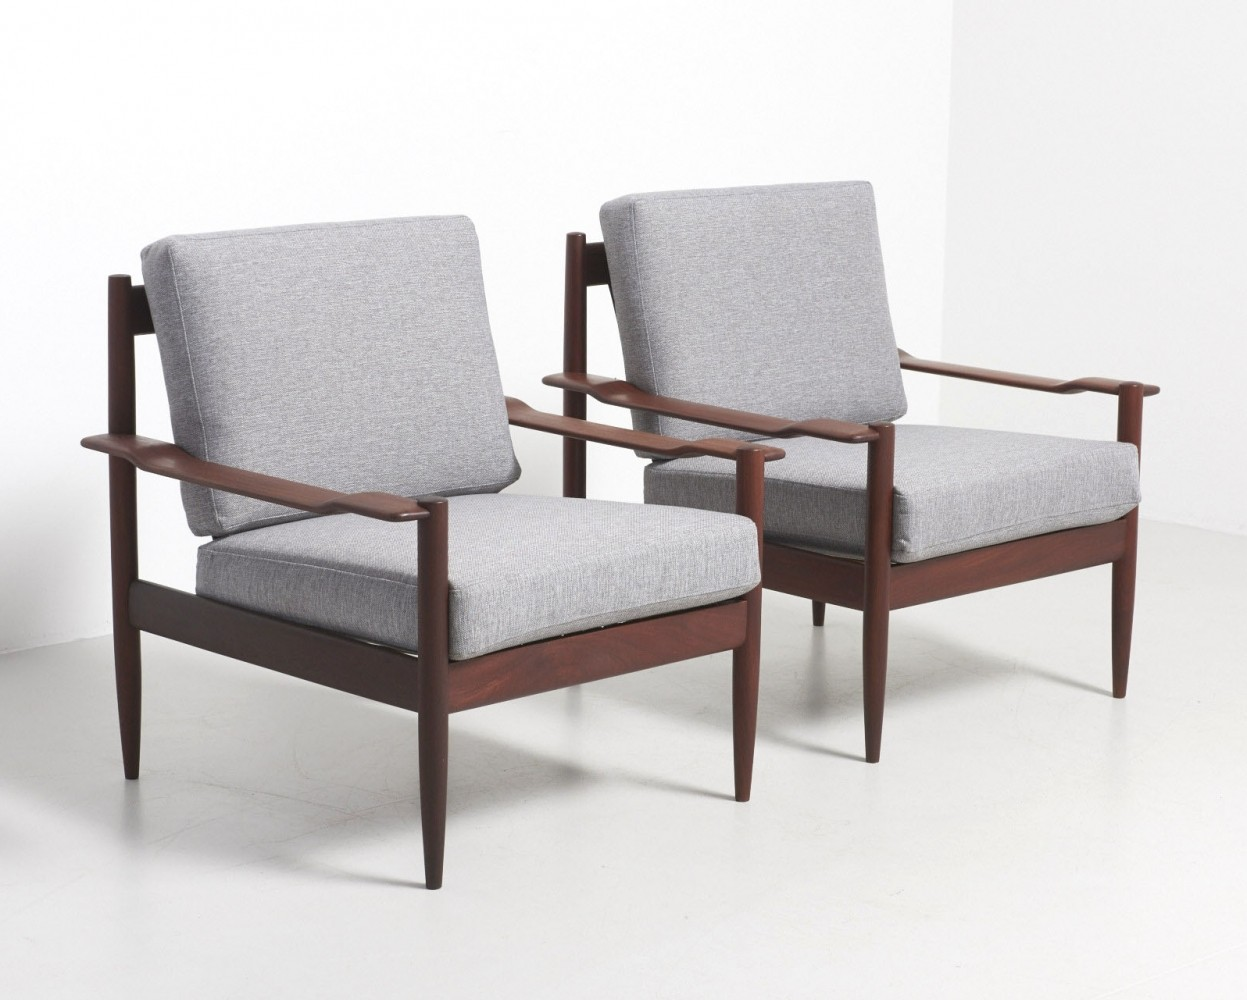 4 x vintage lounge chair 1950s